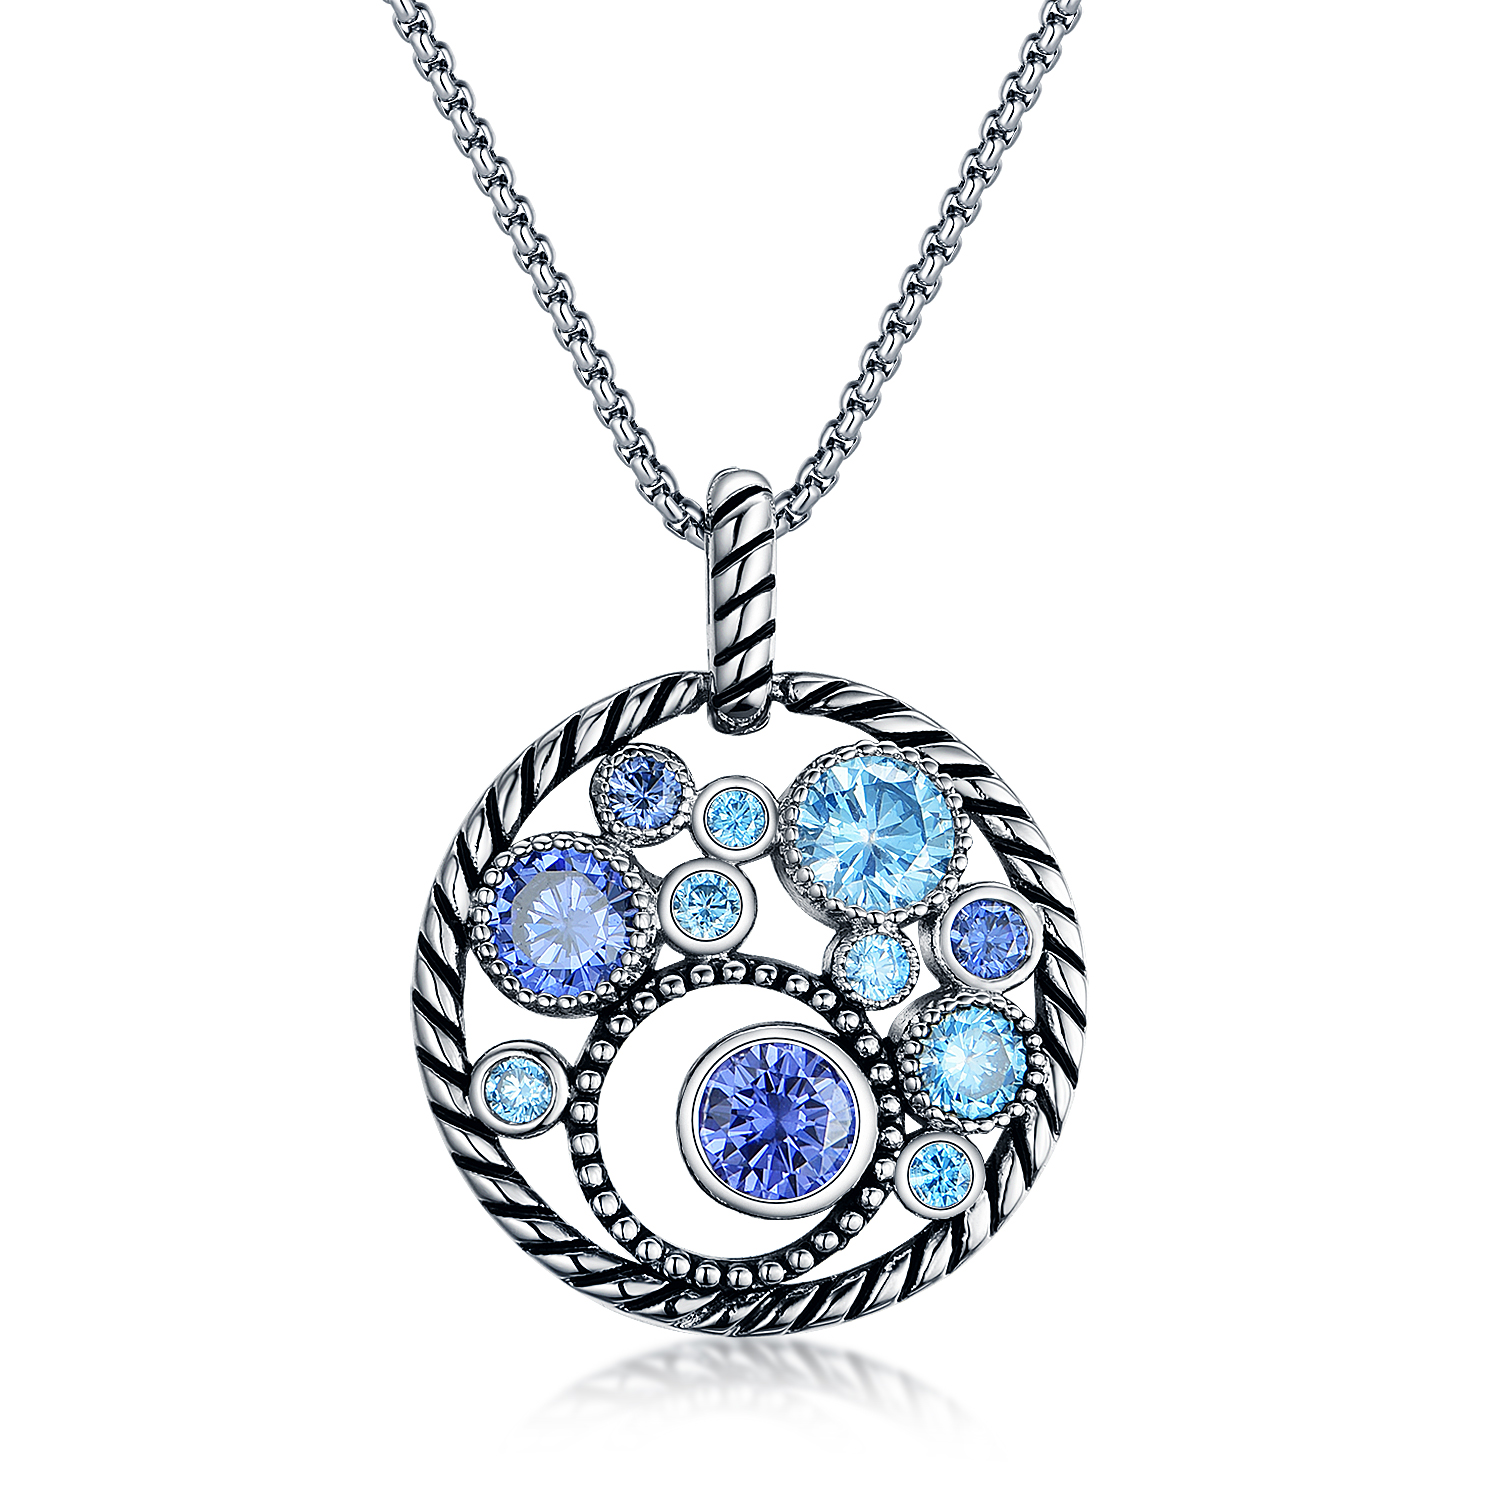 ST2652P-Designer inspired Cable Circel Pendant with bezel setting Tanzanite CZ & Aquamarine Spinel  in Brass/Copper under Rhodium plated from China Top Jewelry factory